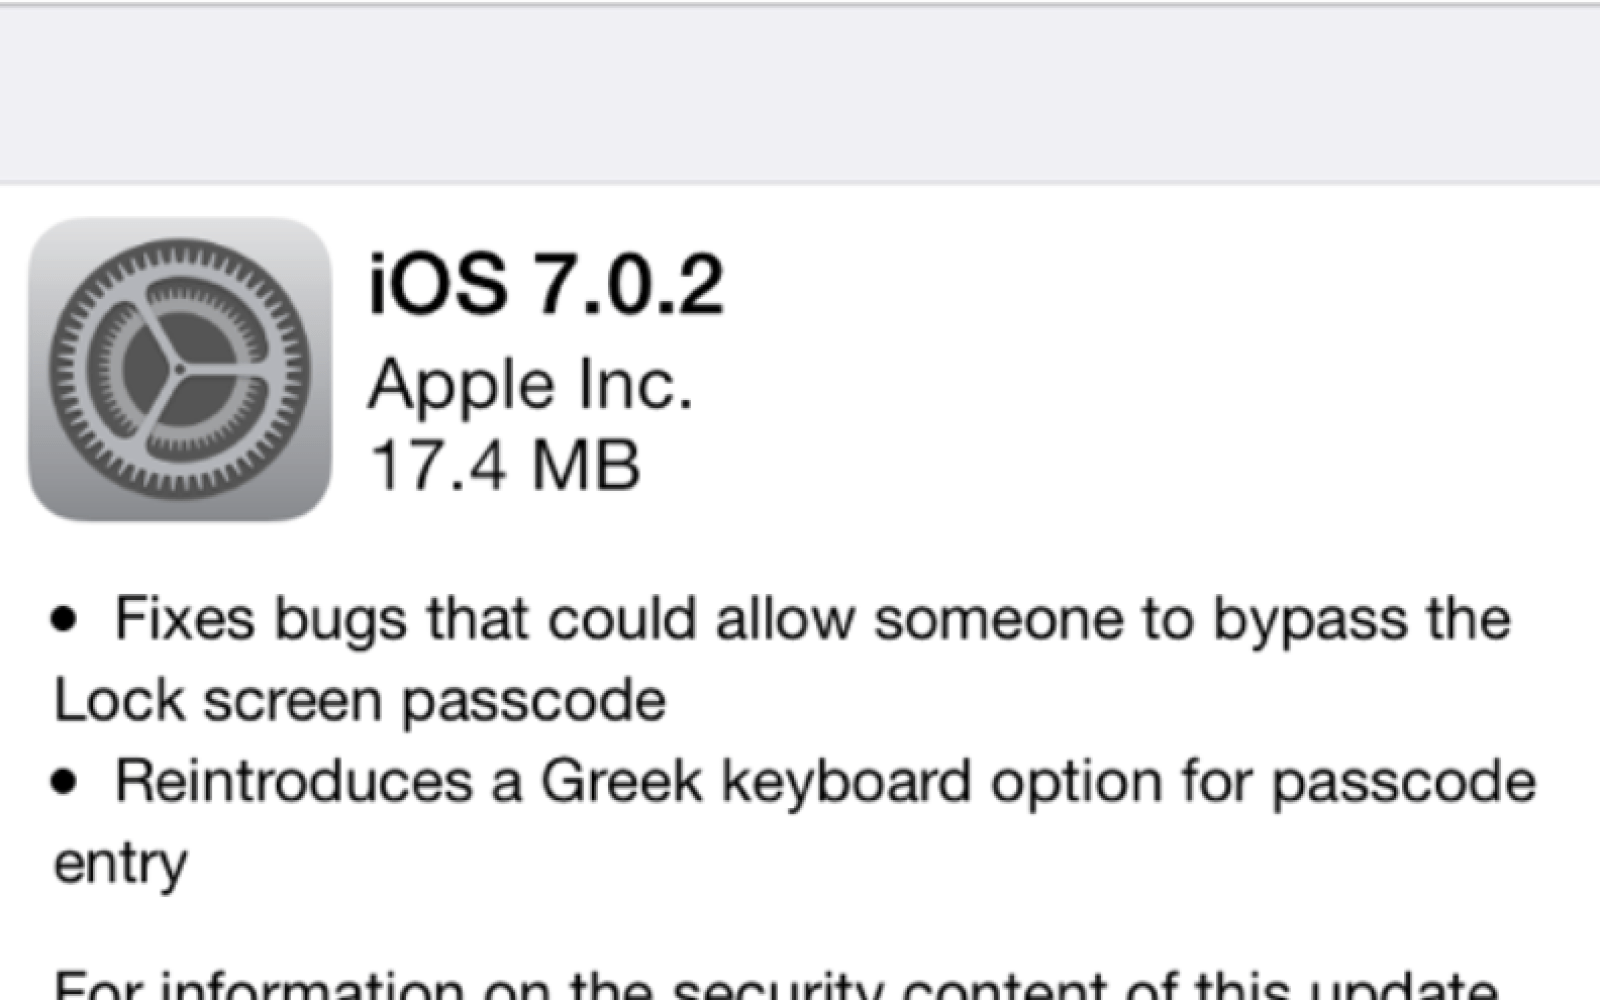 Apple releases iOS 7.0.2 with fix for Lock screen passcode bypass flaw